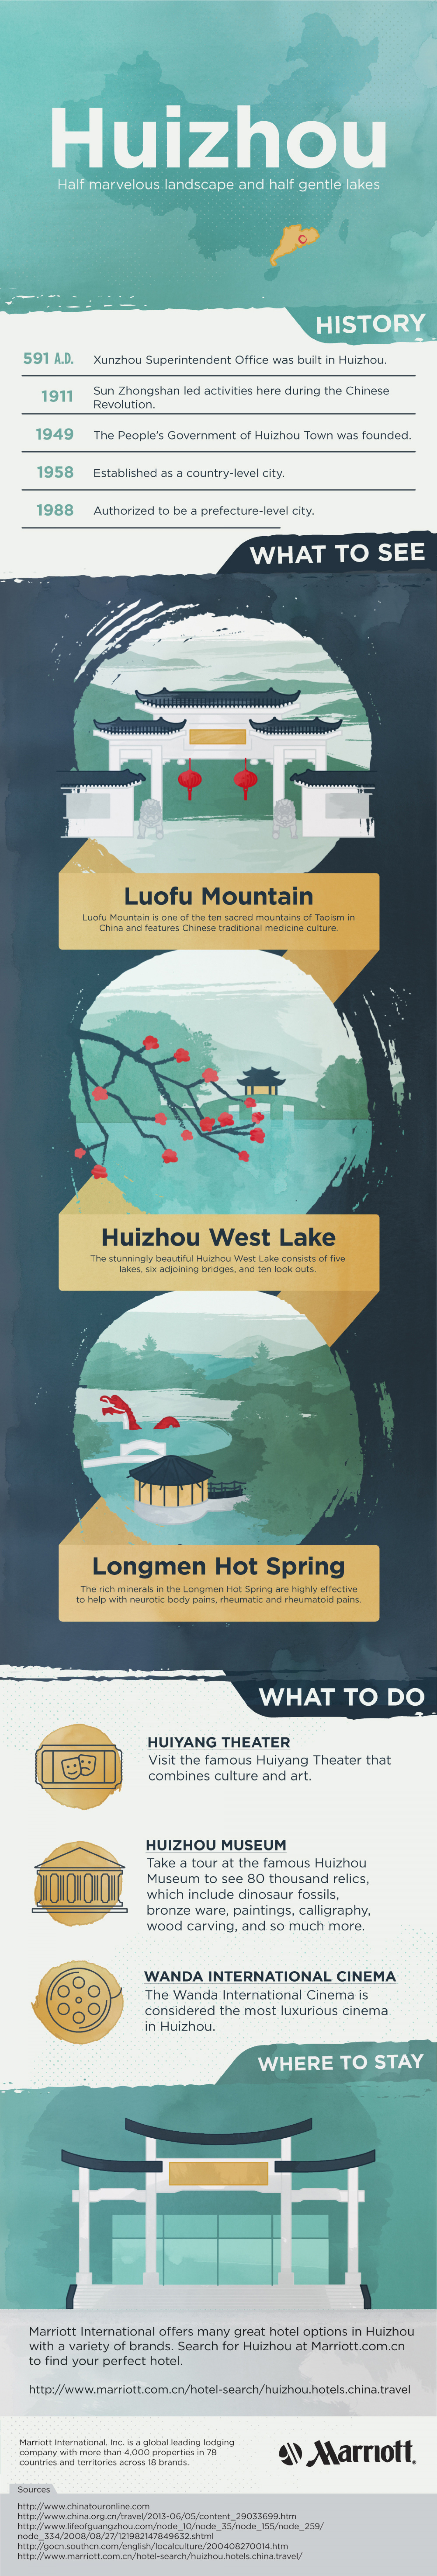 Huizhou Marvelous Landscape and Half Gentle Lakes Infographic